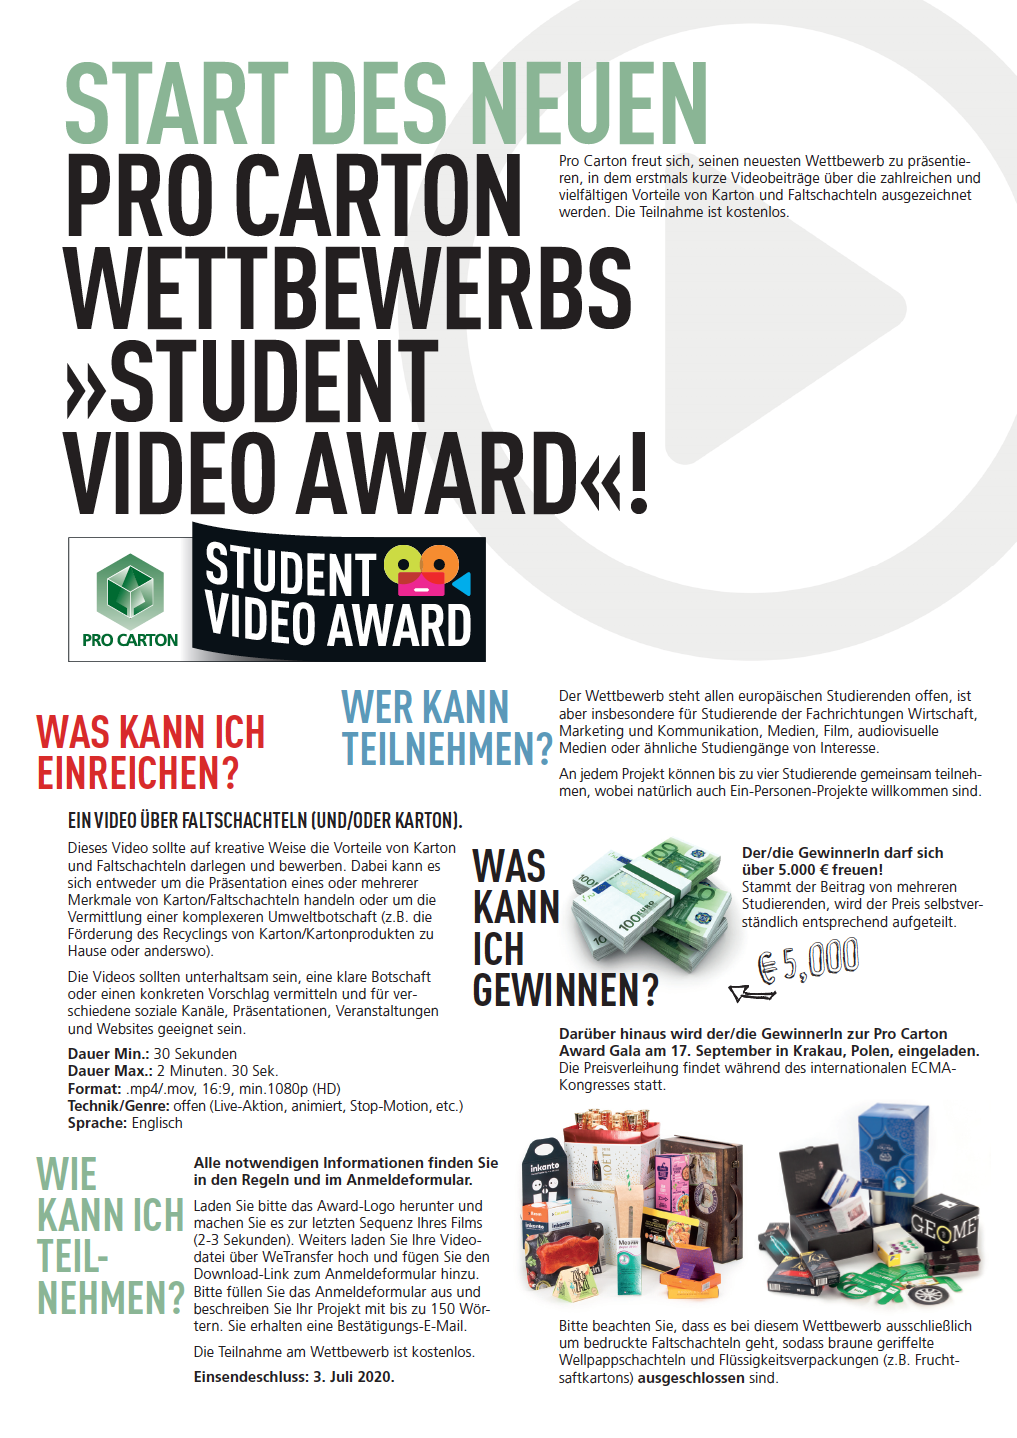 PRO KARTON STUDENT VIDEO AWARD ZWEISEITIGES FALTBLATT